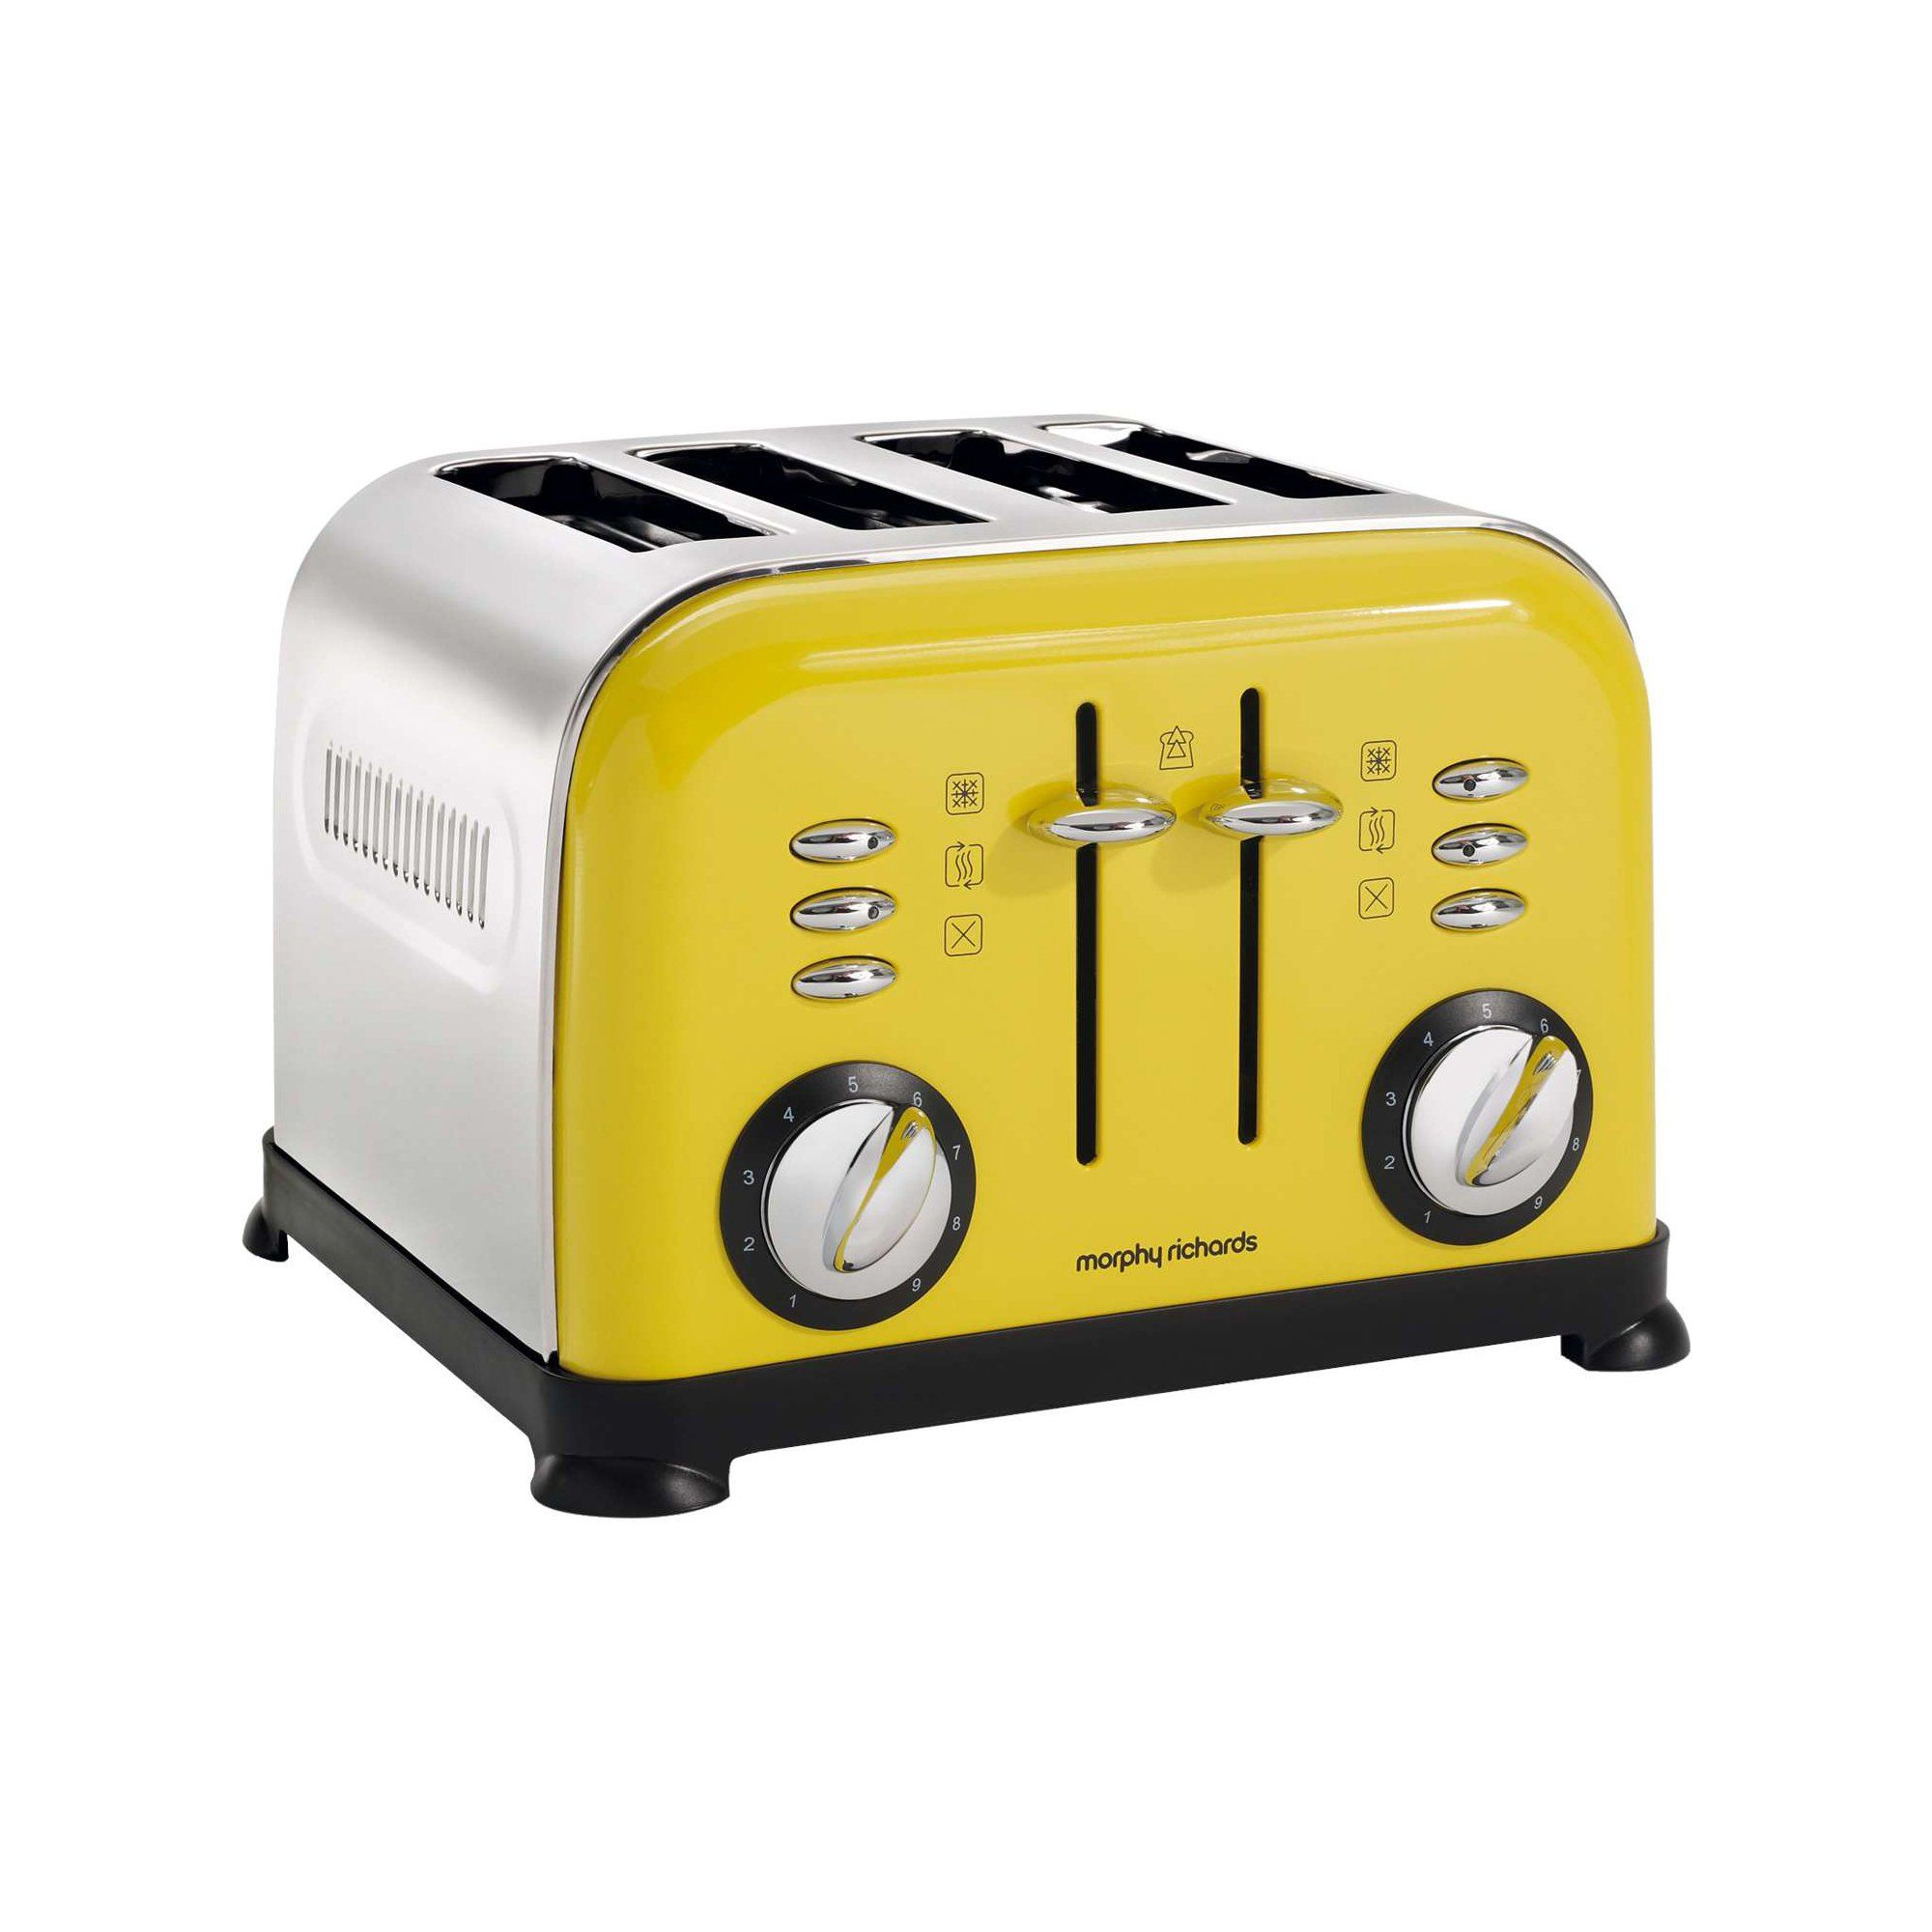 morphy richards 4 slice accents toaster yellow